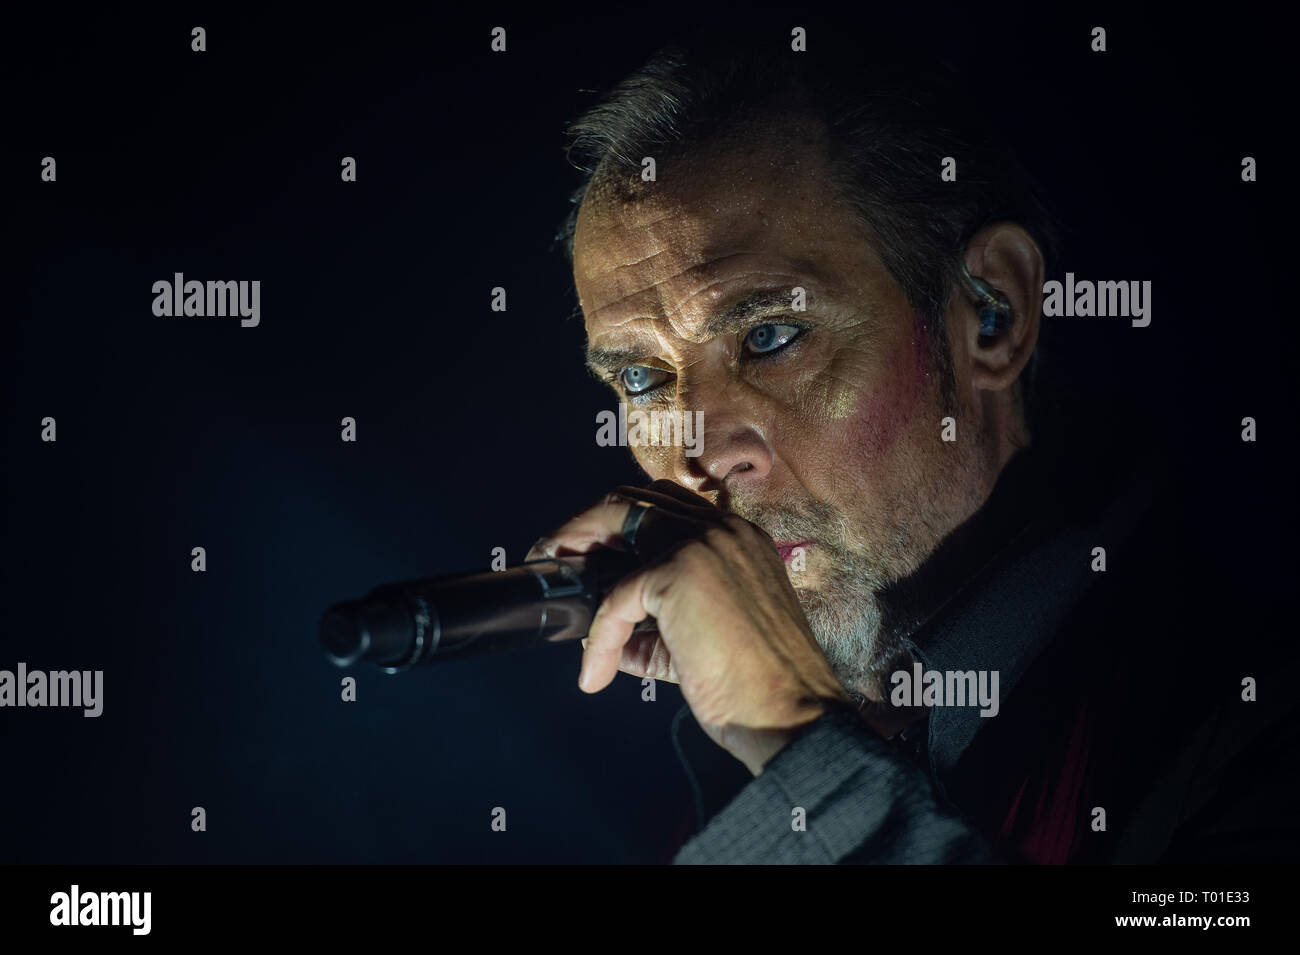 Peter Murphy, singer and leader of english 80's dark rock band Bauhaus. in concert at Orion Club, Ciampino, Rome, Italy, 21-11-2018 - Stock Image